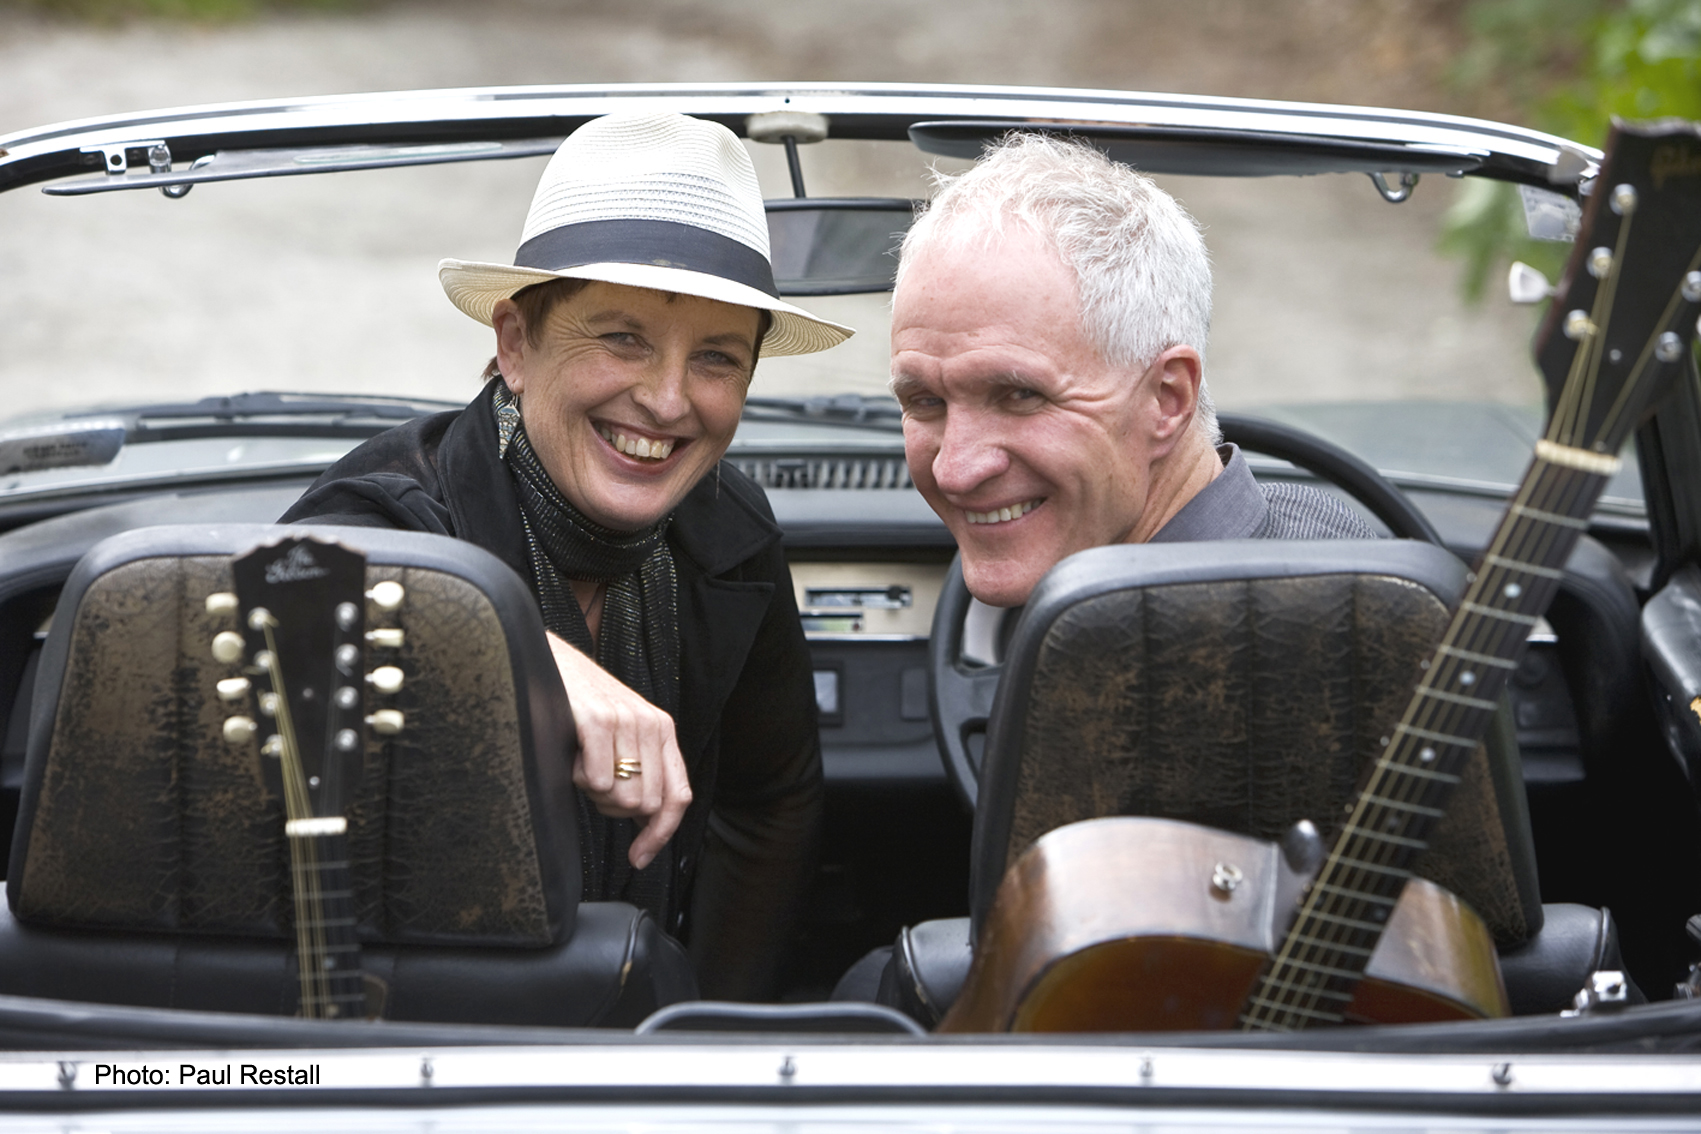 Mark Laurent And Brenda Liddiard at the Whangarei Folk Club